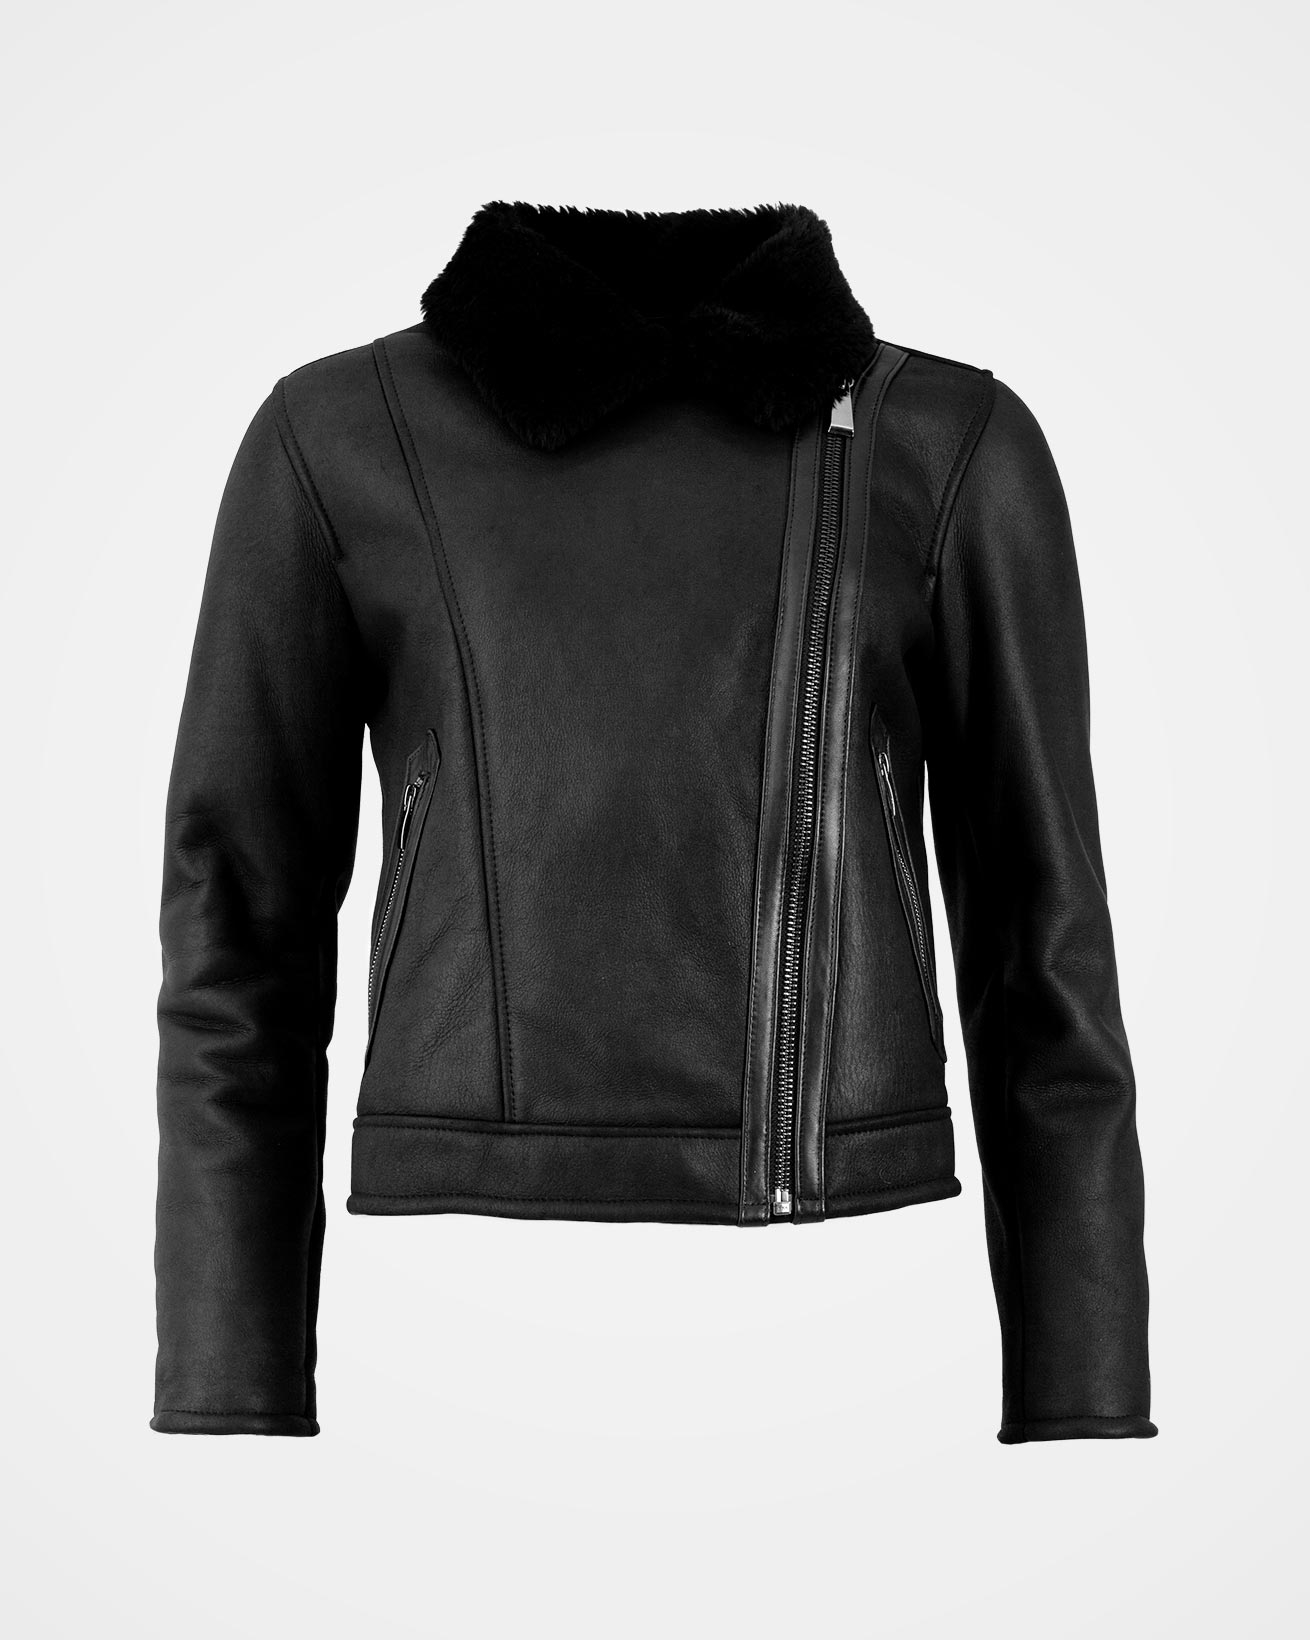 7370_sheepskin-biker-jacket_black_front.jpg